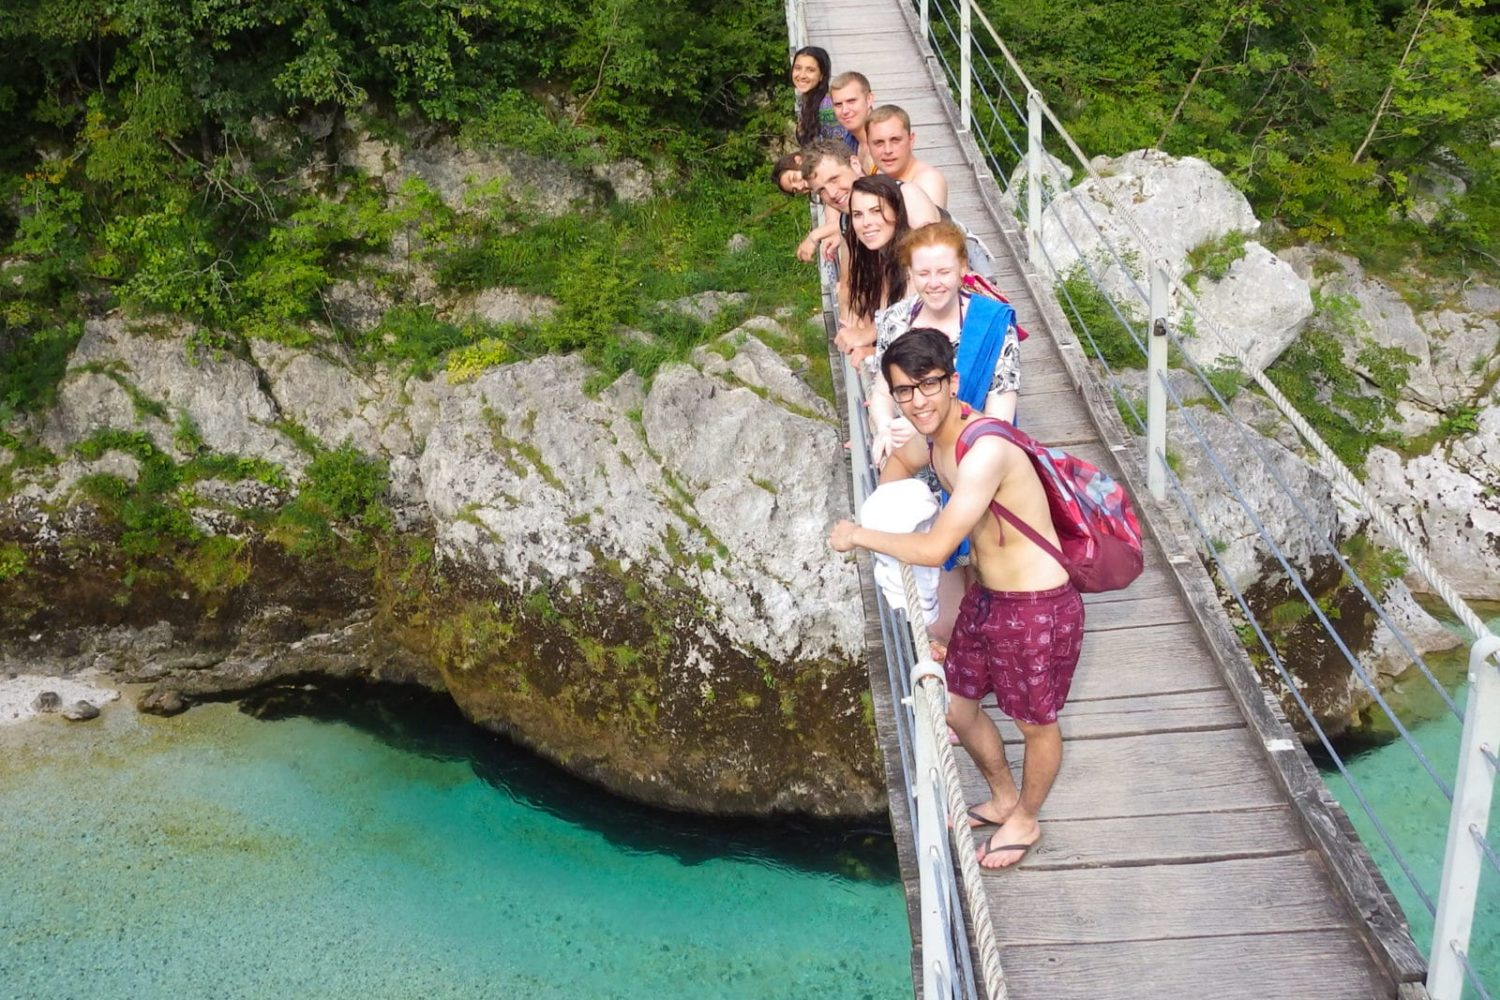 Soca river day trip from Bled